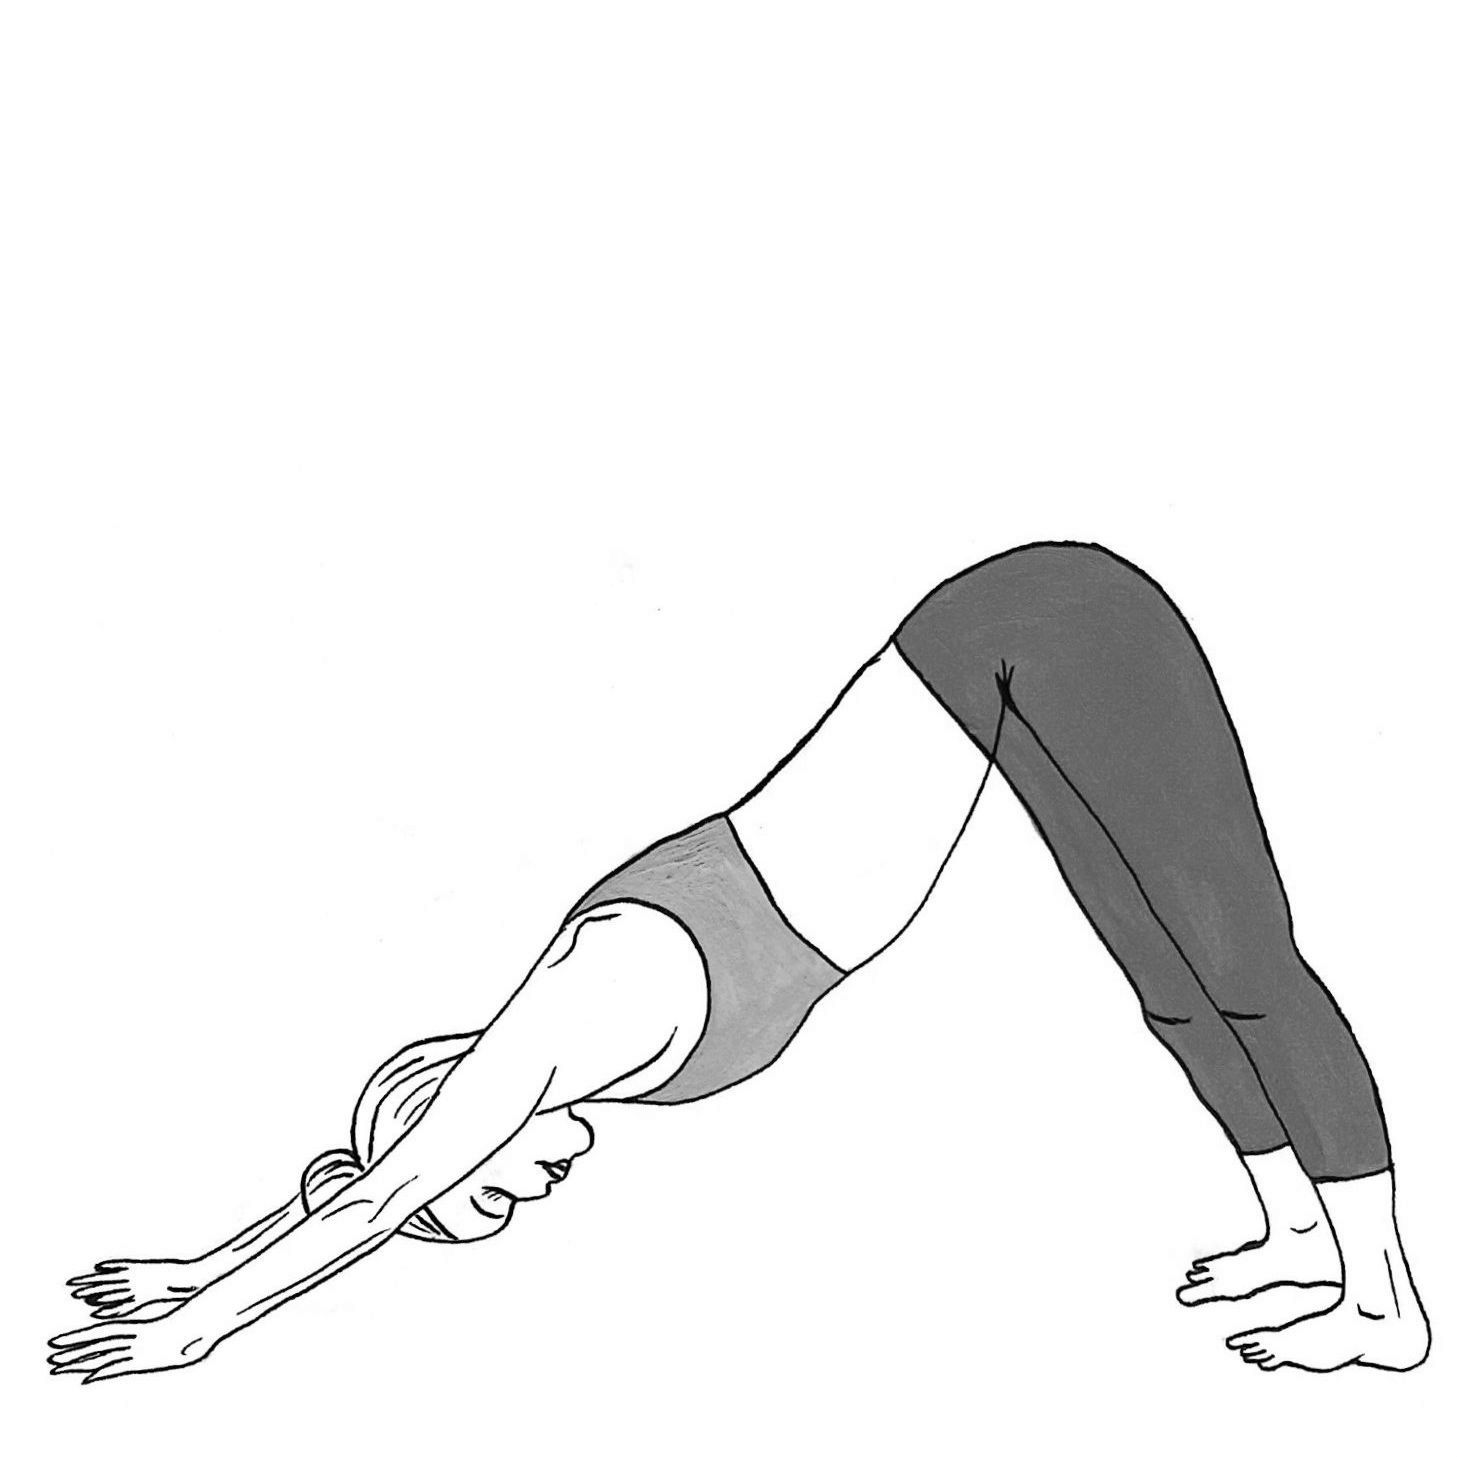 Downward Facing Dog - Adho Mukha Savanasana